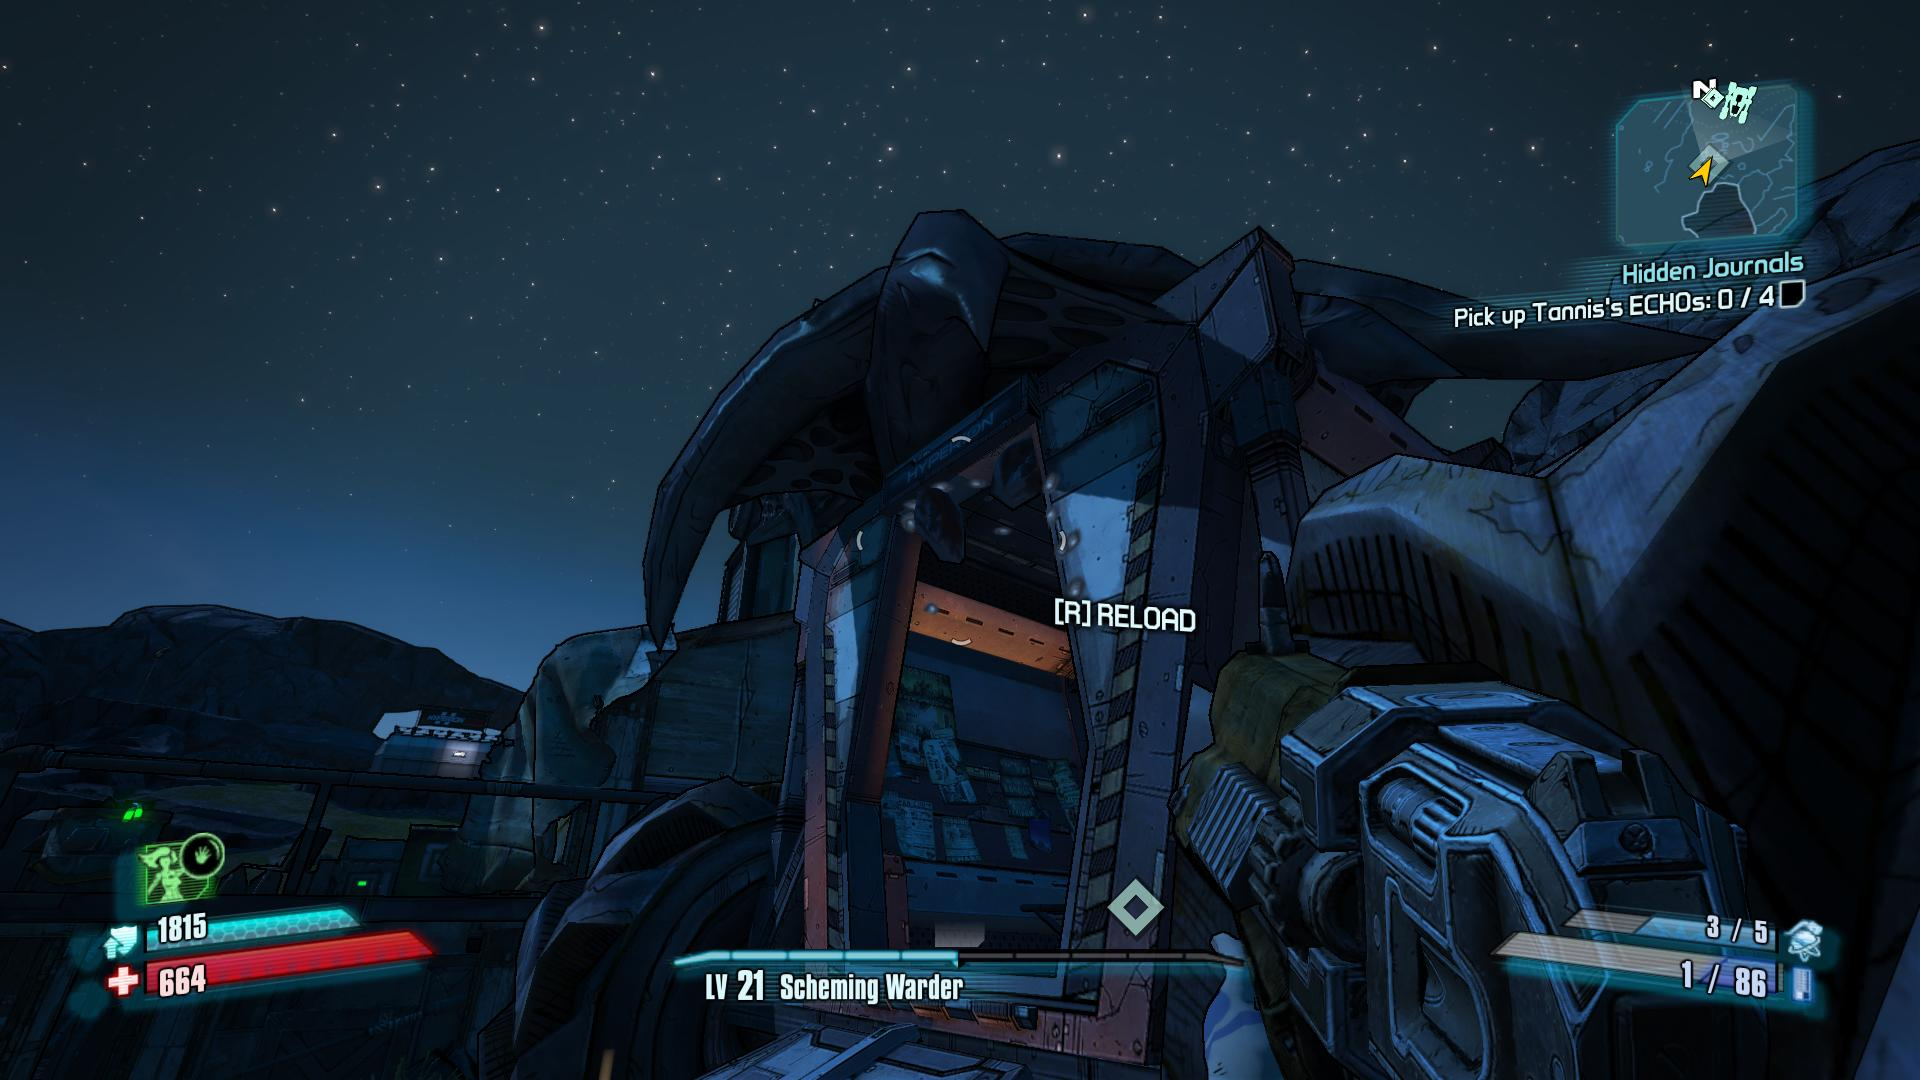 borderlands2 2012 09 22 15 47 00 931?w=350&h=200&crop=1 attach transmitters to comms towers in systems jammed in  at gsmx.co